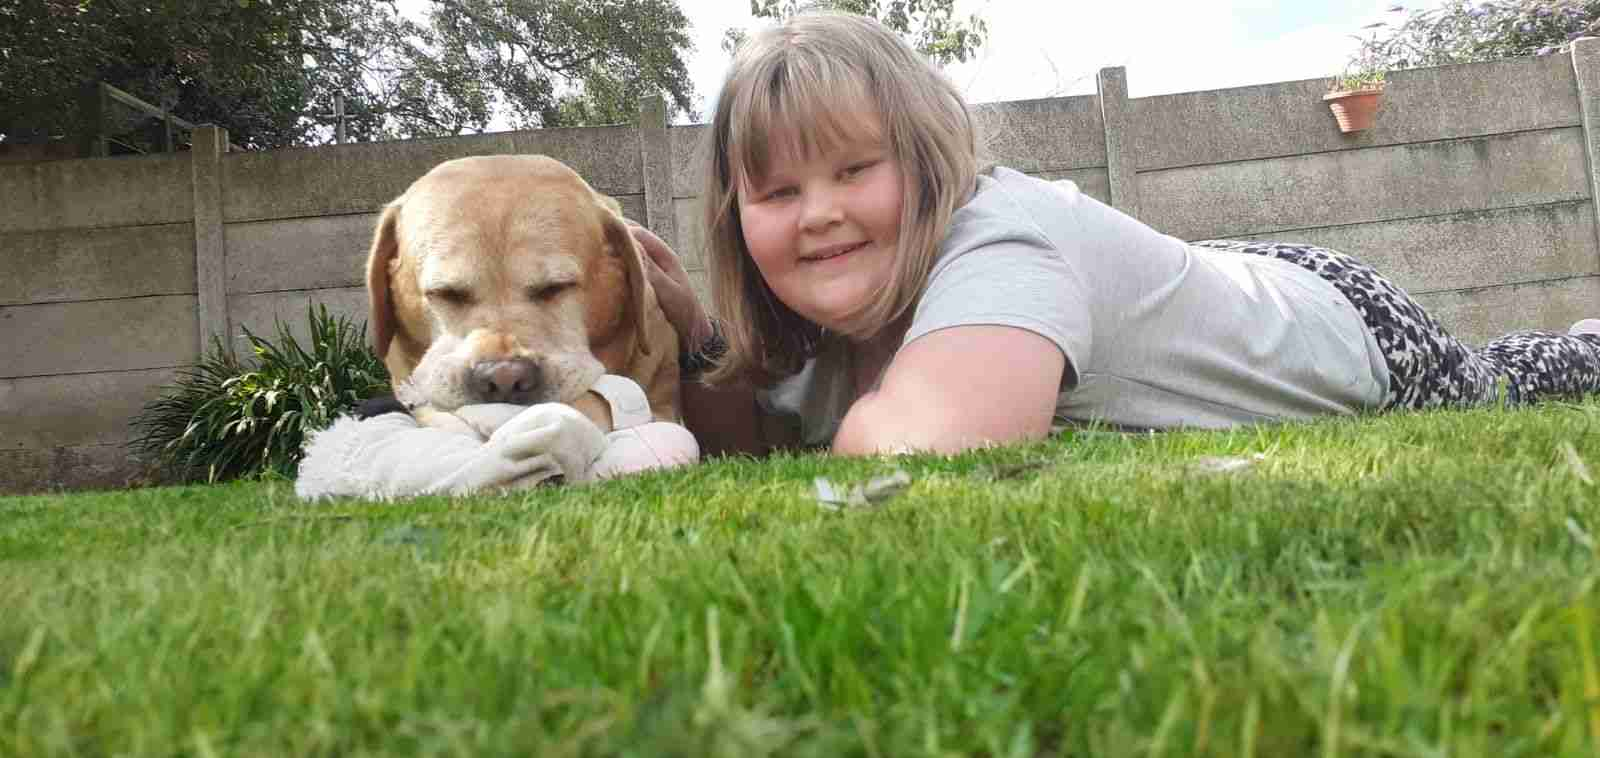 Jess lying on the grass with a dog